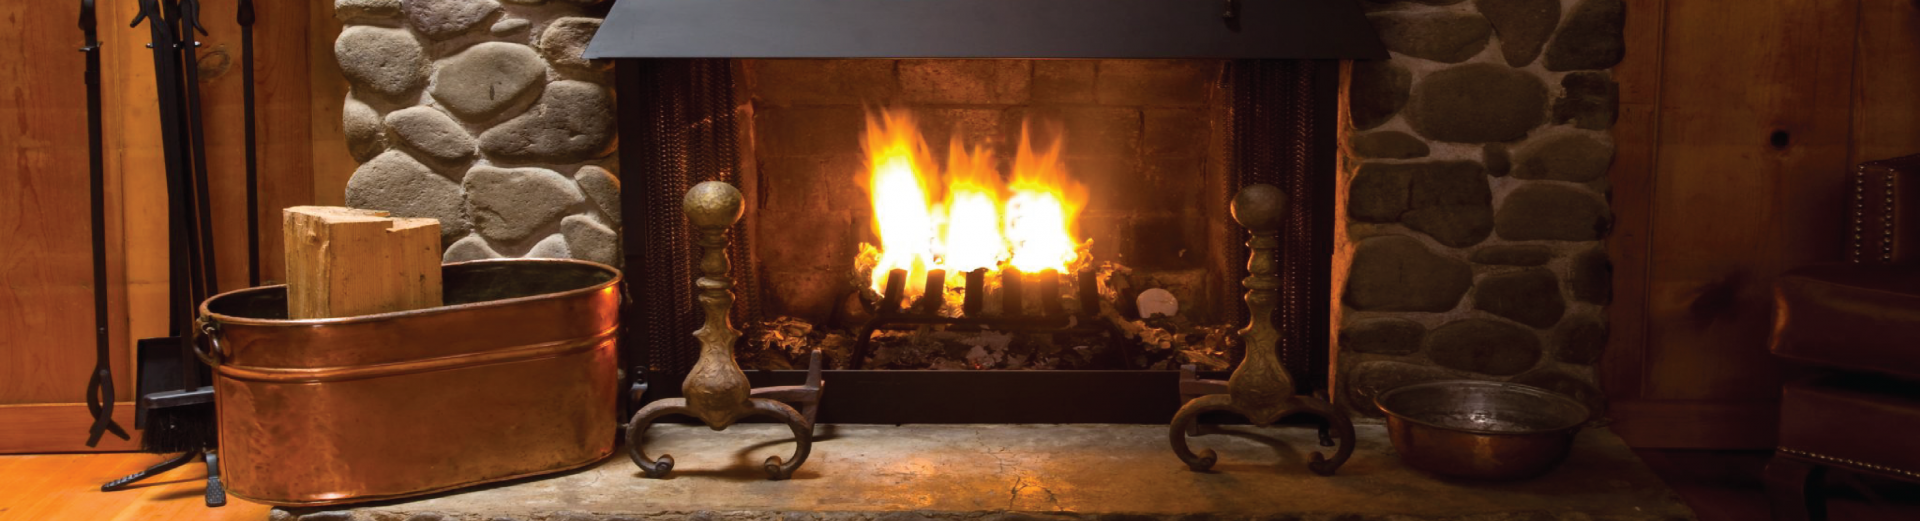 Fireplaces and Other Solid Fuel Appliances